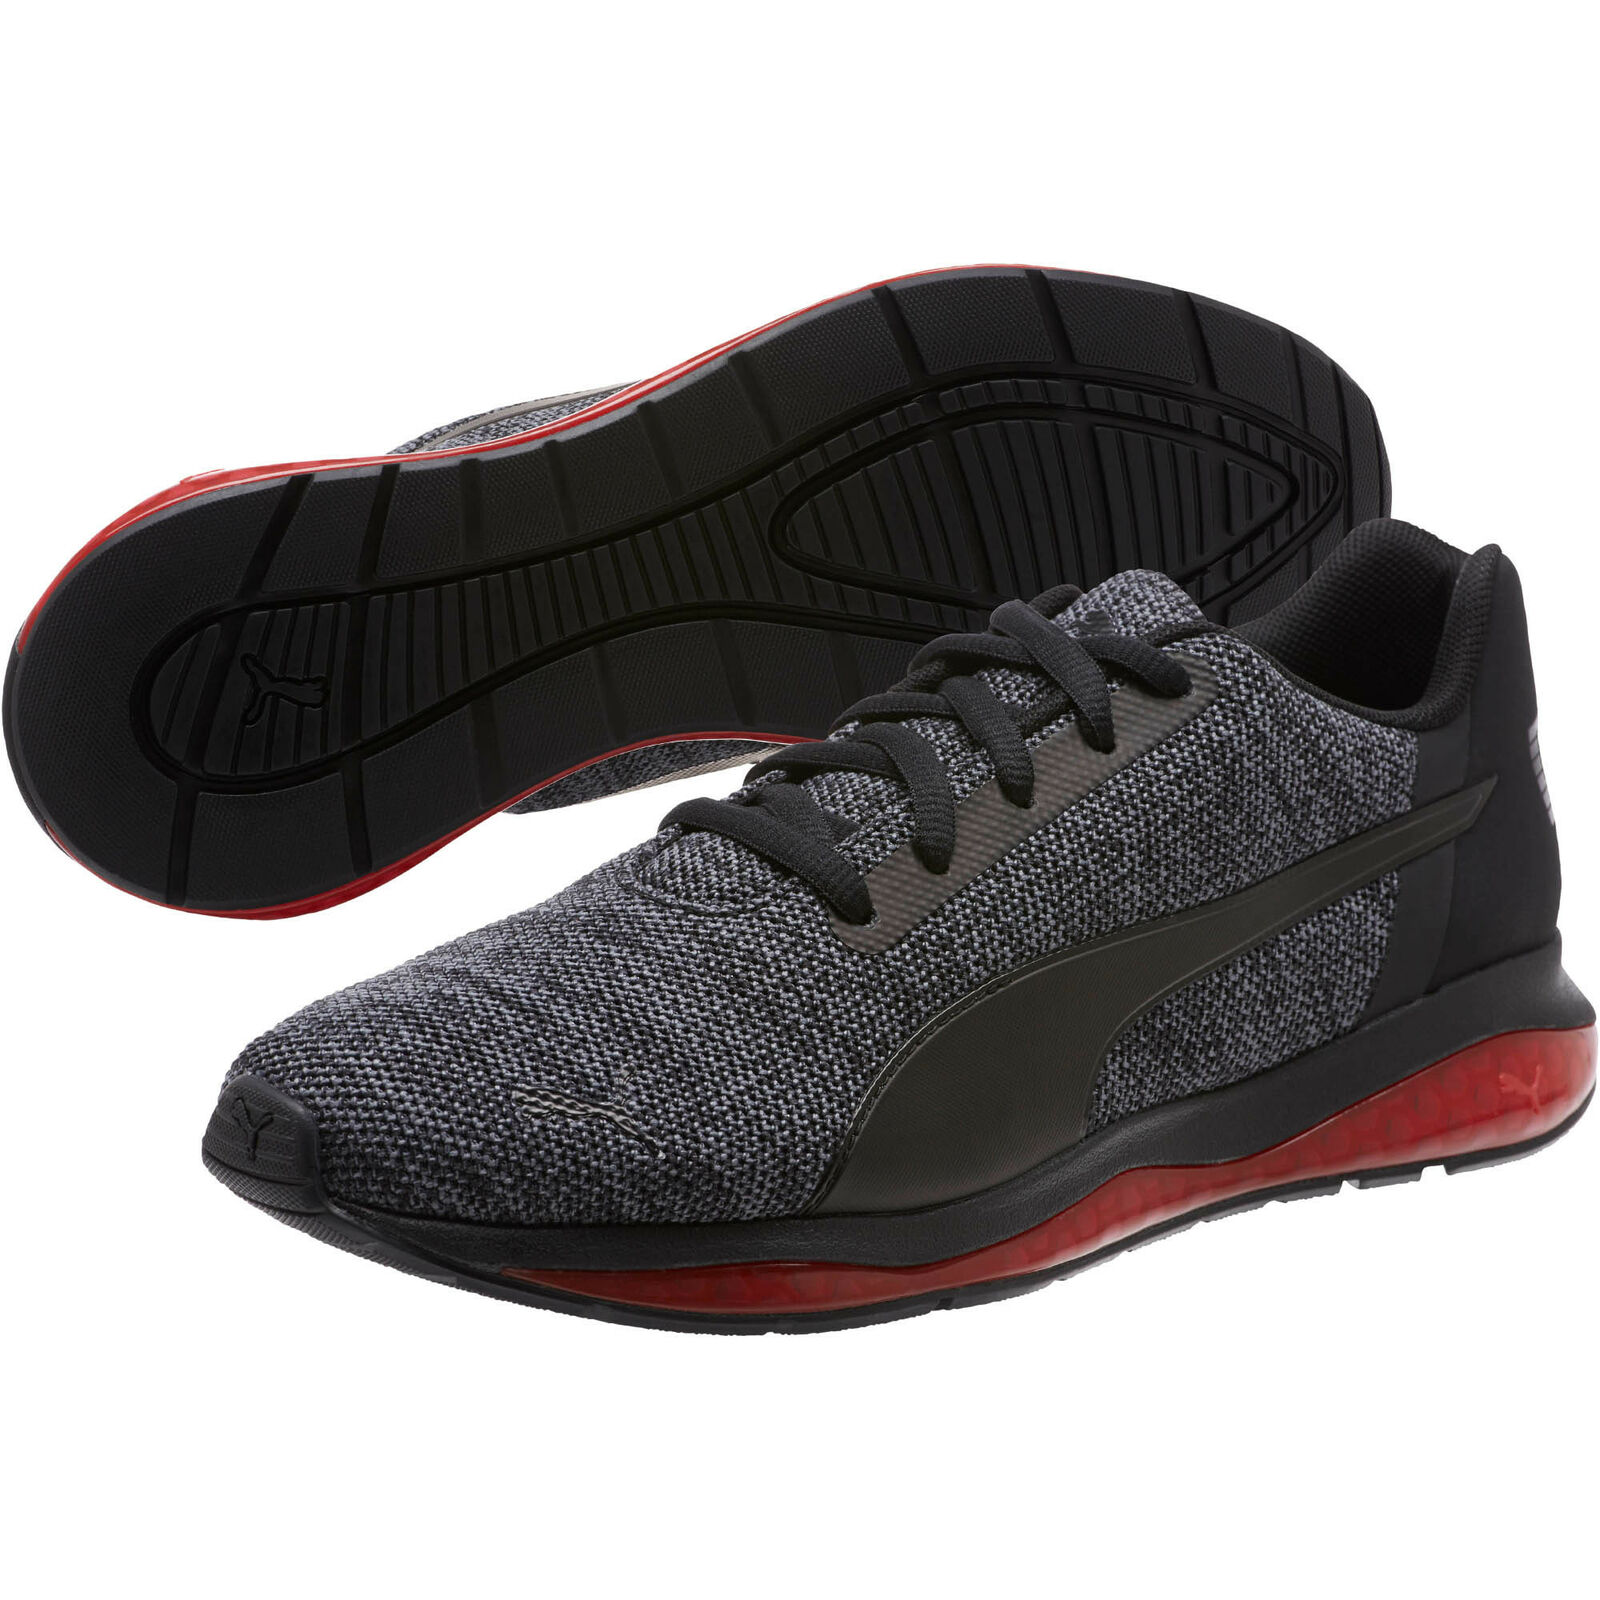 PUMA CELL Ultimate Knit Training Shoes Men Shoe Running